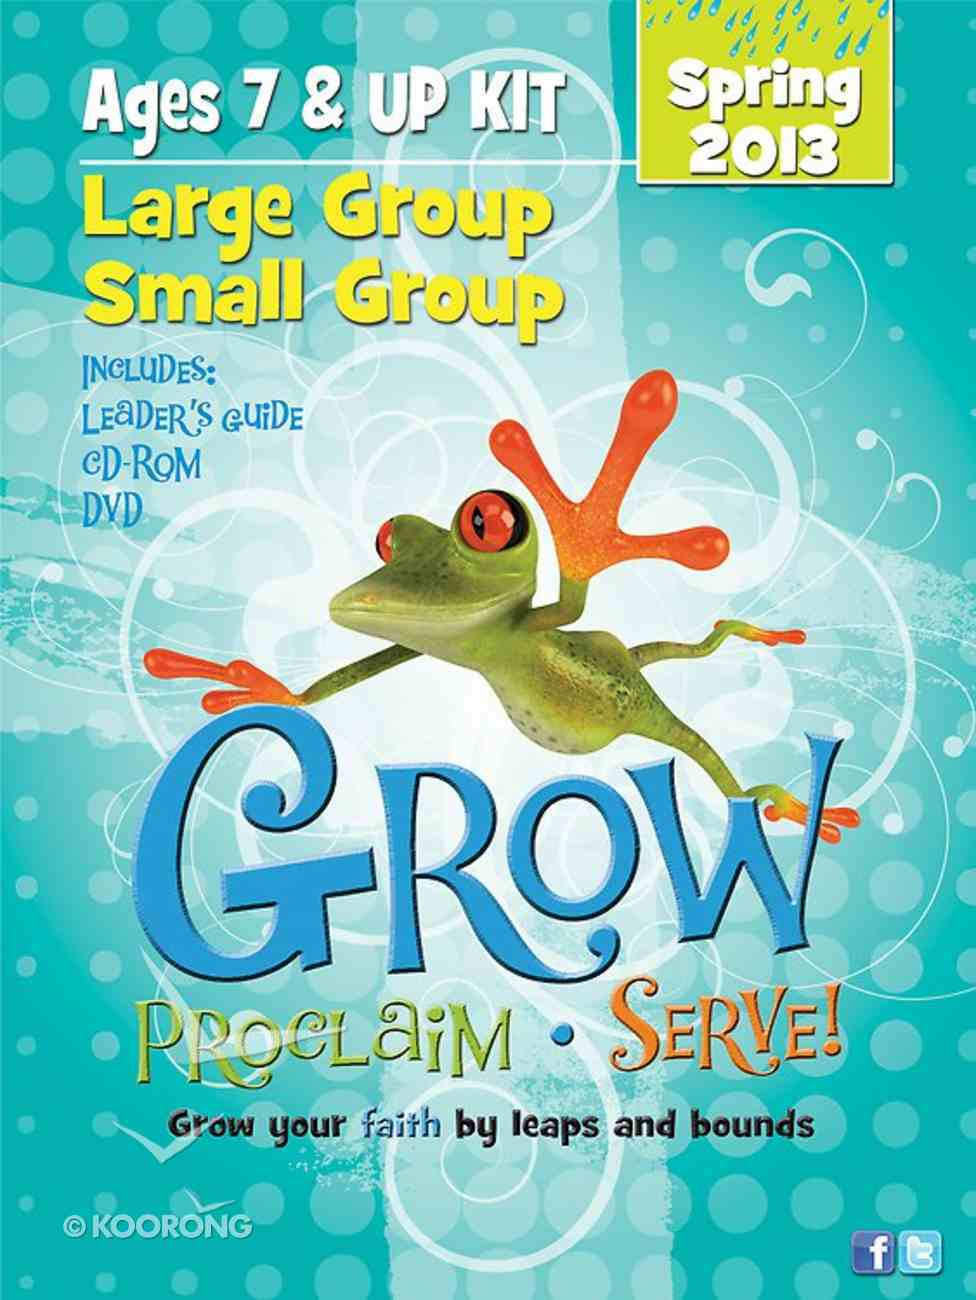 Grow, Proclaim, Serve! Large Group/Small Group Kit Spring 2013 (Ages 7 & Up) Pack